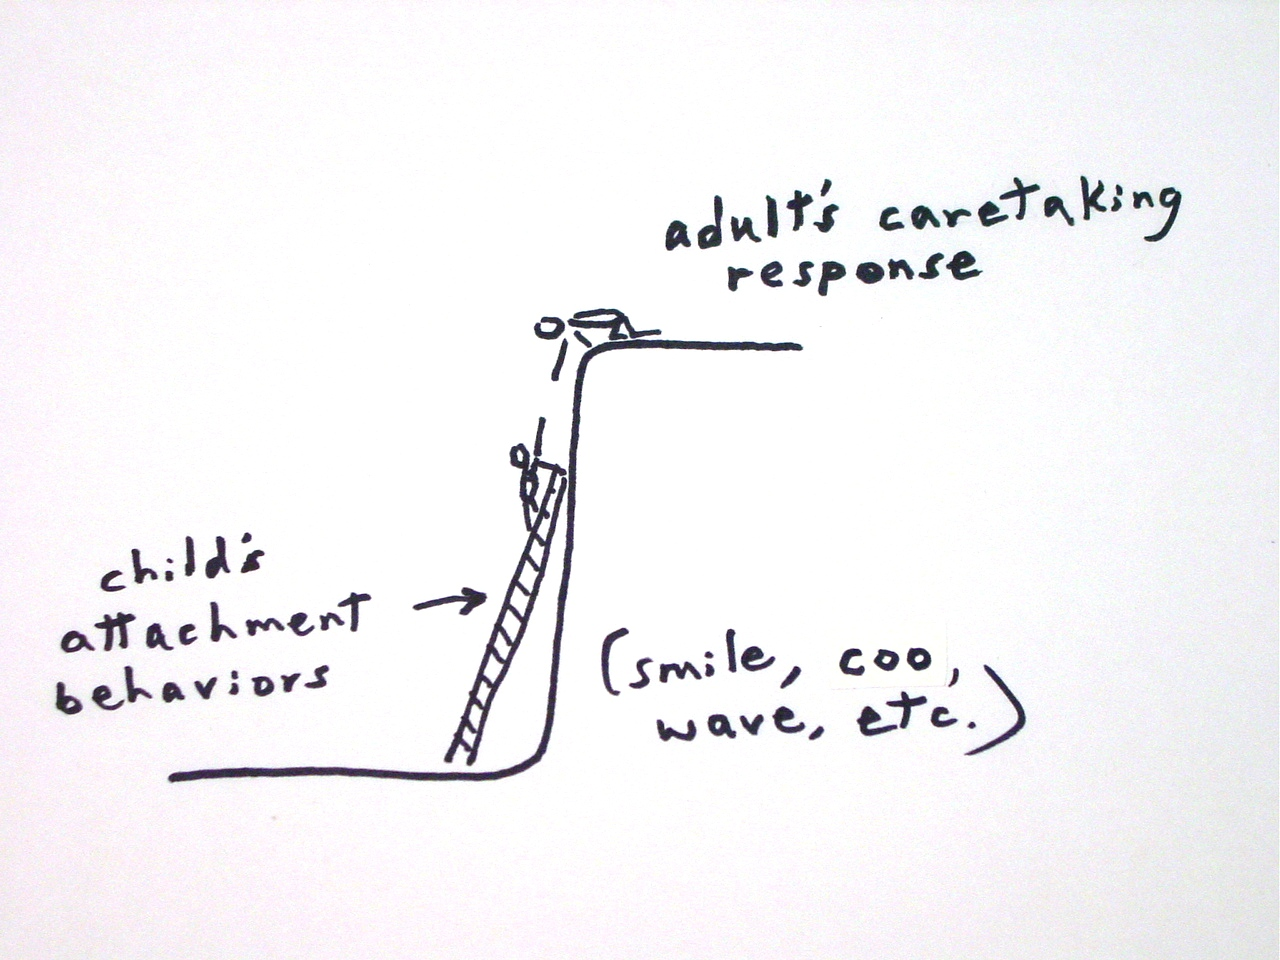 attachment styles  u0026 blocked care in pictures  doodles by robert spottswood